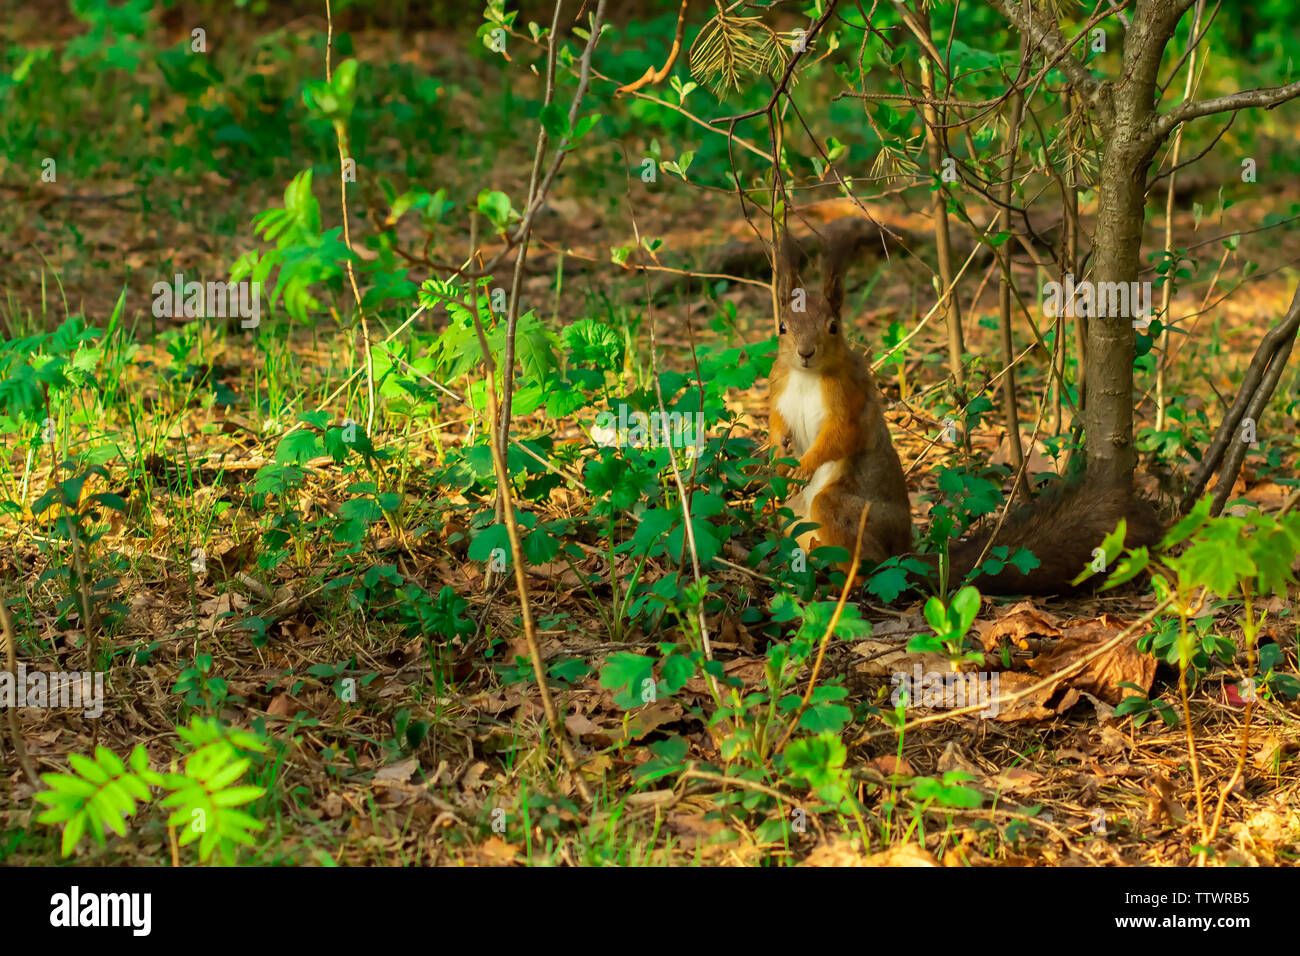 Red-haired wild squirrel stands in green foliage in the forest - Stock Image